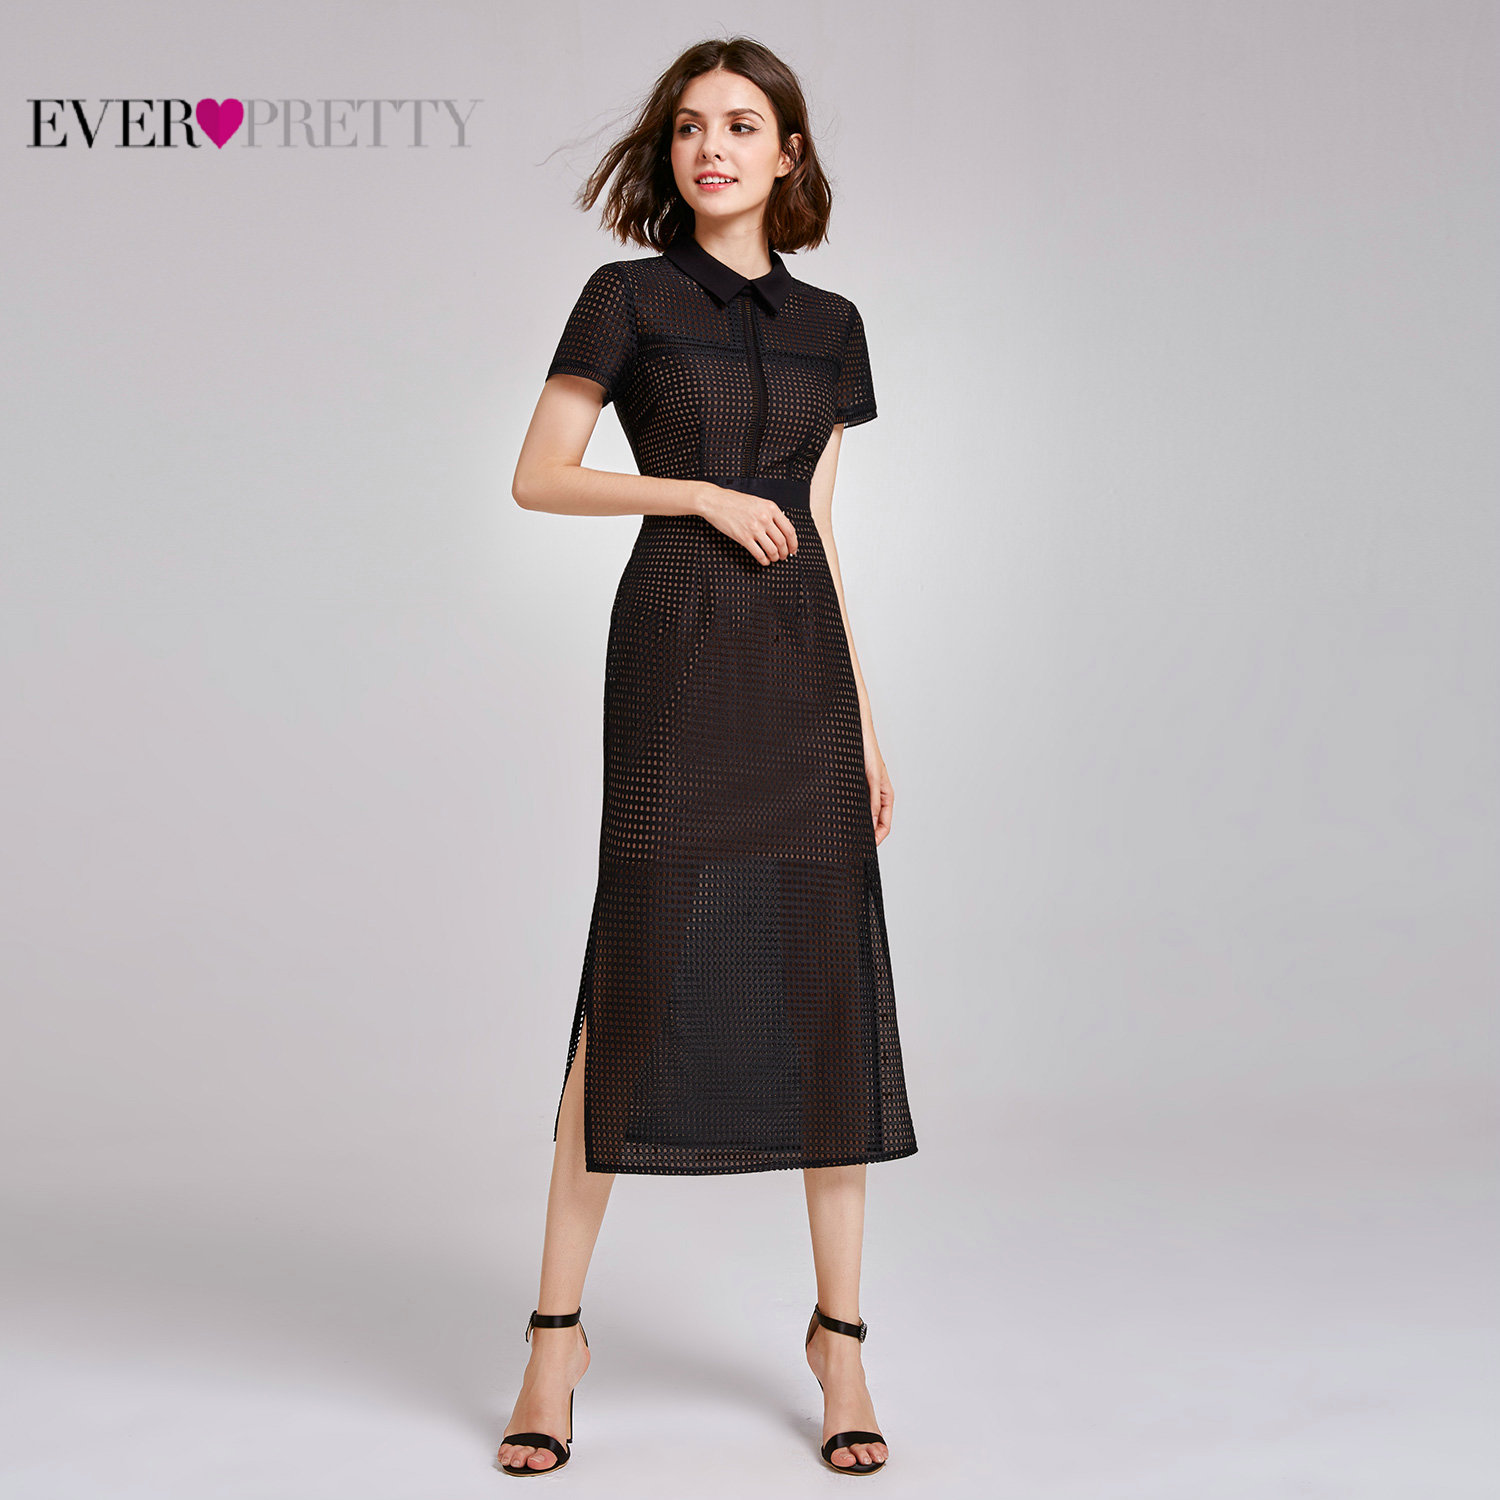 Lace Cocktail Dresses Ever Pretty AS07169 Short Sleeve Straight Sexy Causal Office Dress 2020 Tea Length Evening Gowns